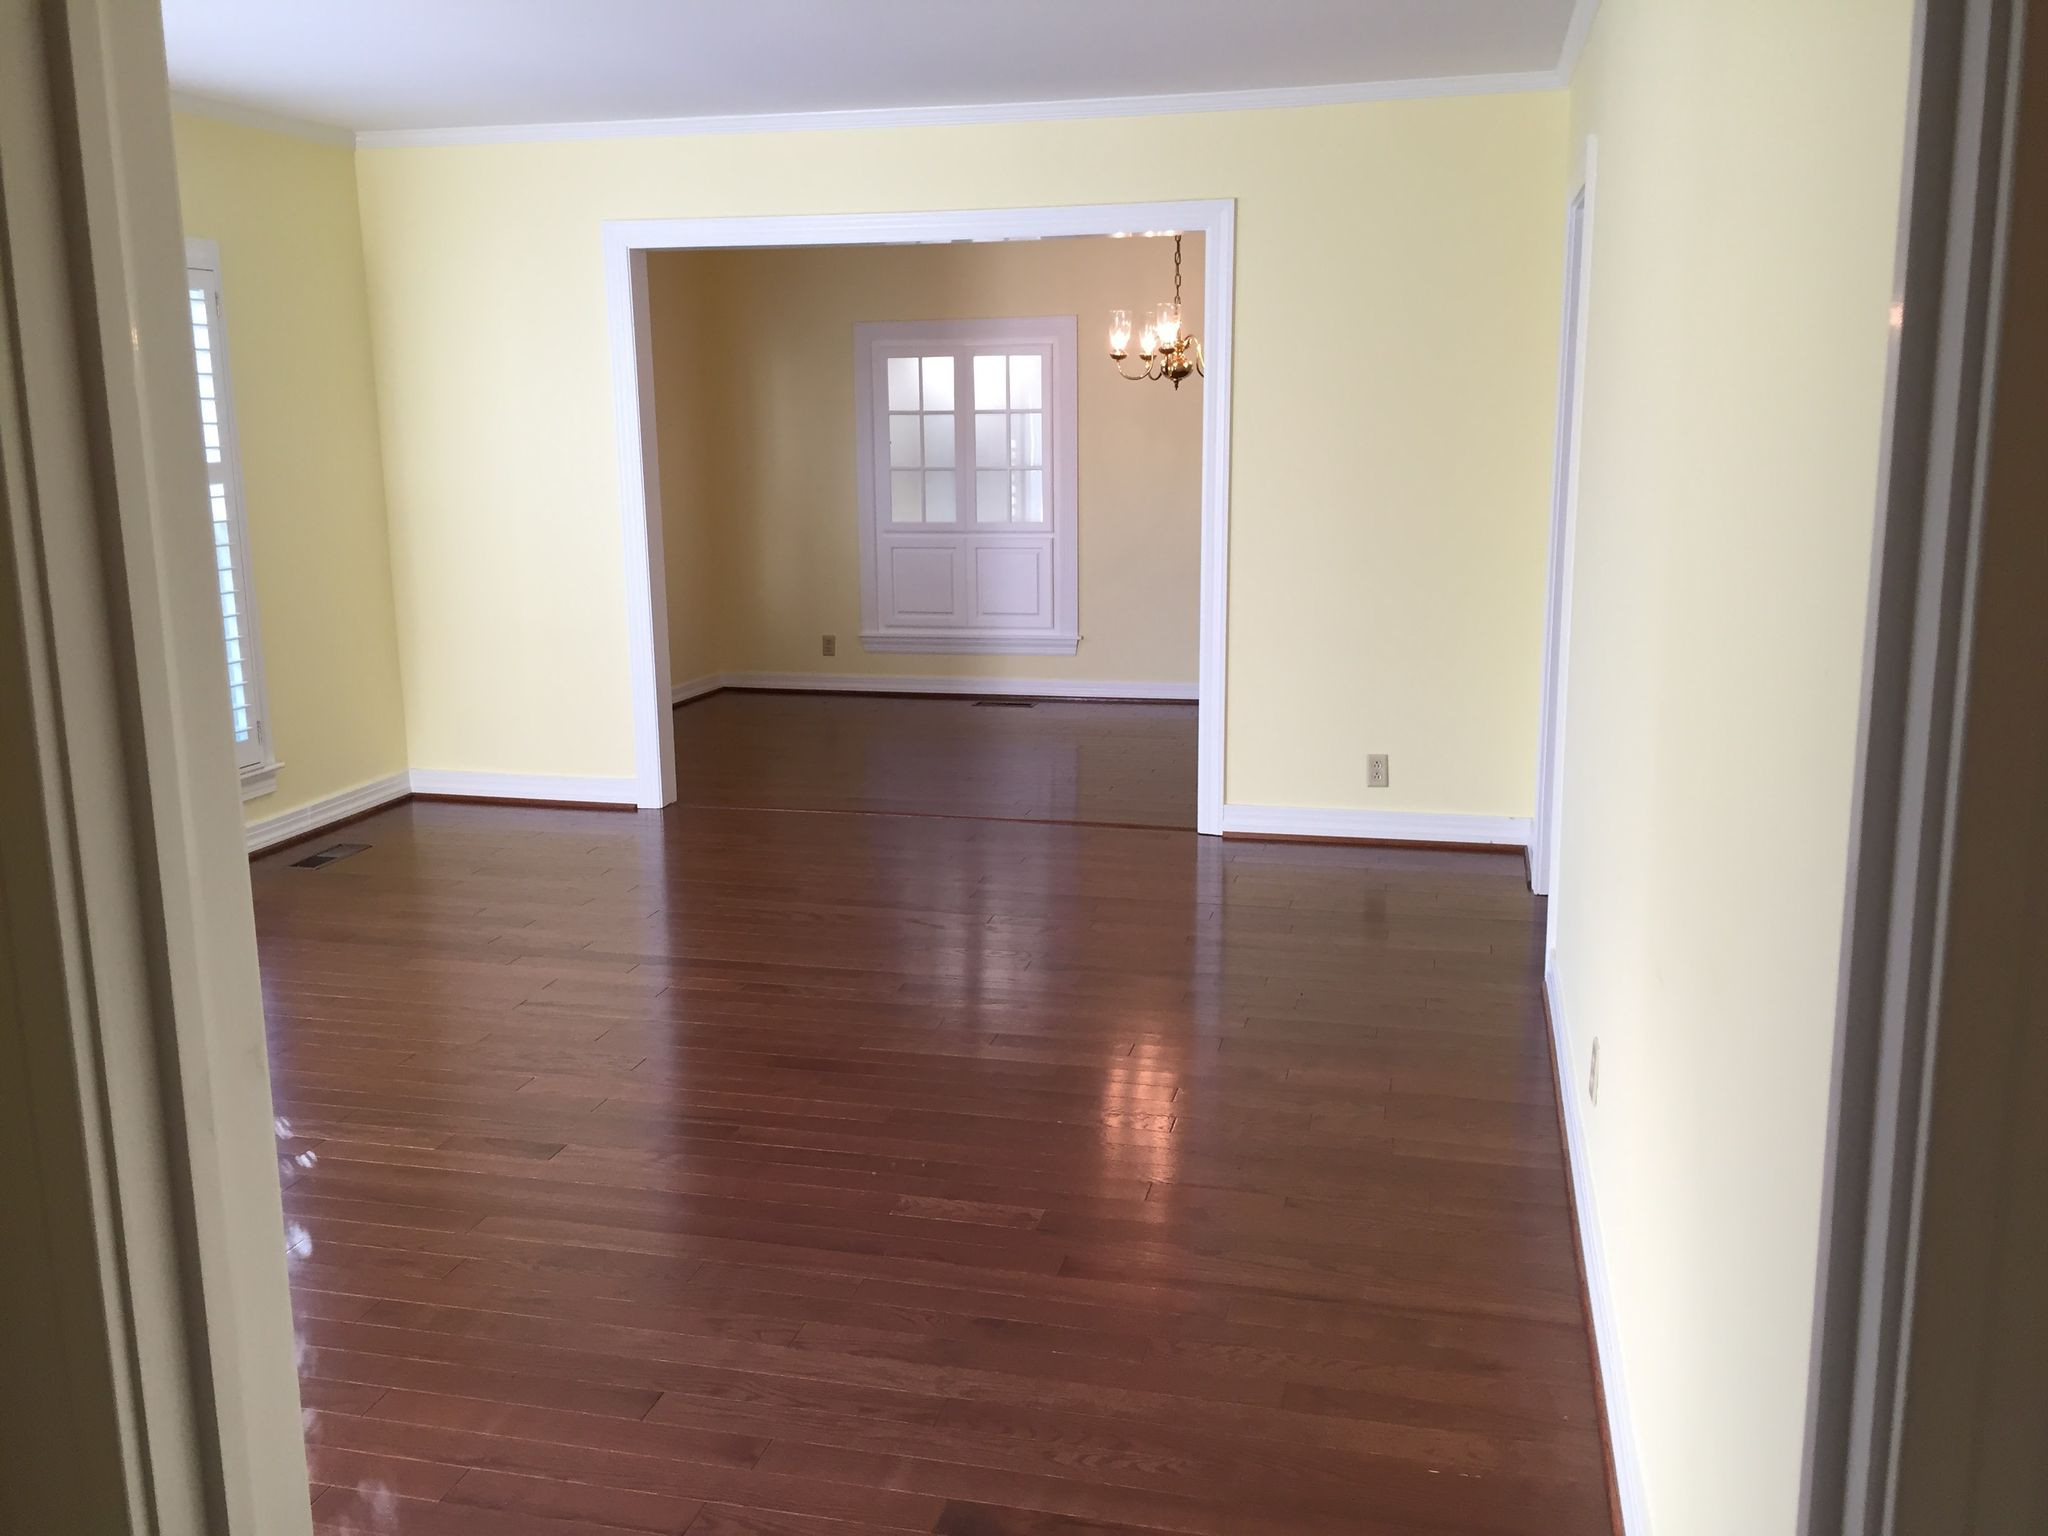 hardwood flooring ct wholesale of properties for sale putnam county mapio net for beautifully maintained 4 bedroom 3 bath home within walking distance of tennessee tech and downtown cookeville hardwood floors throughout first floor